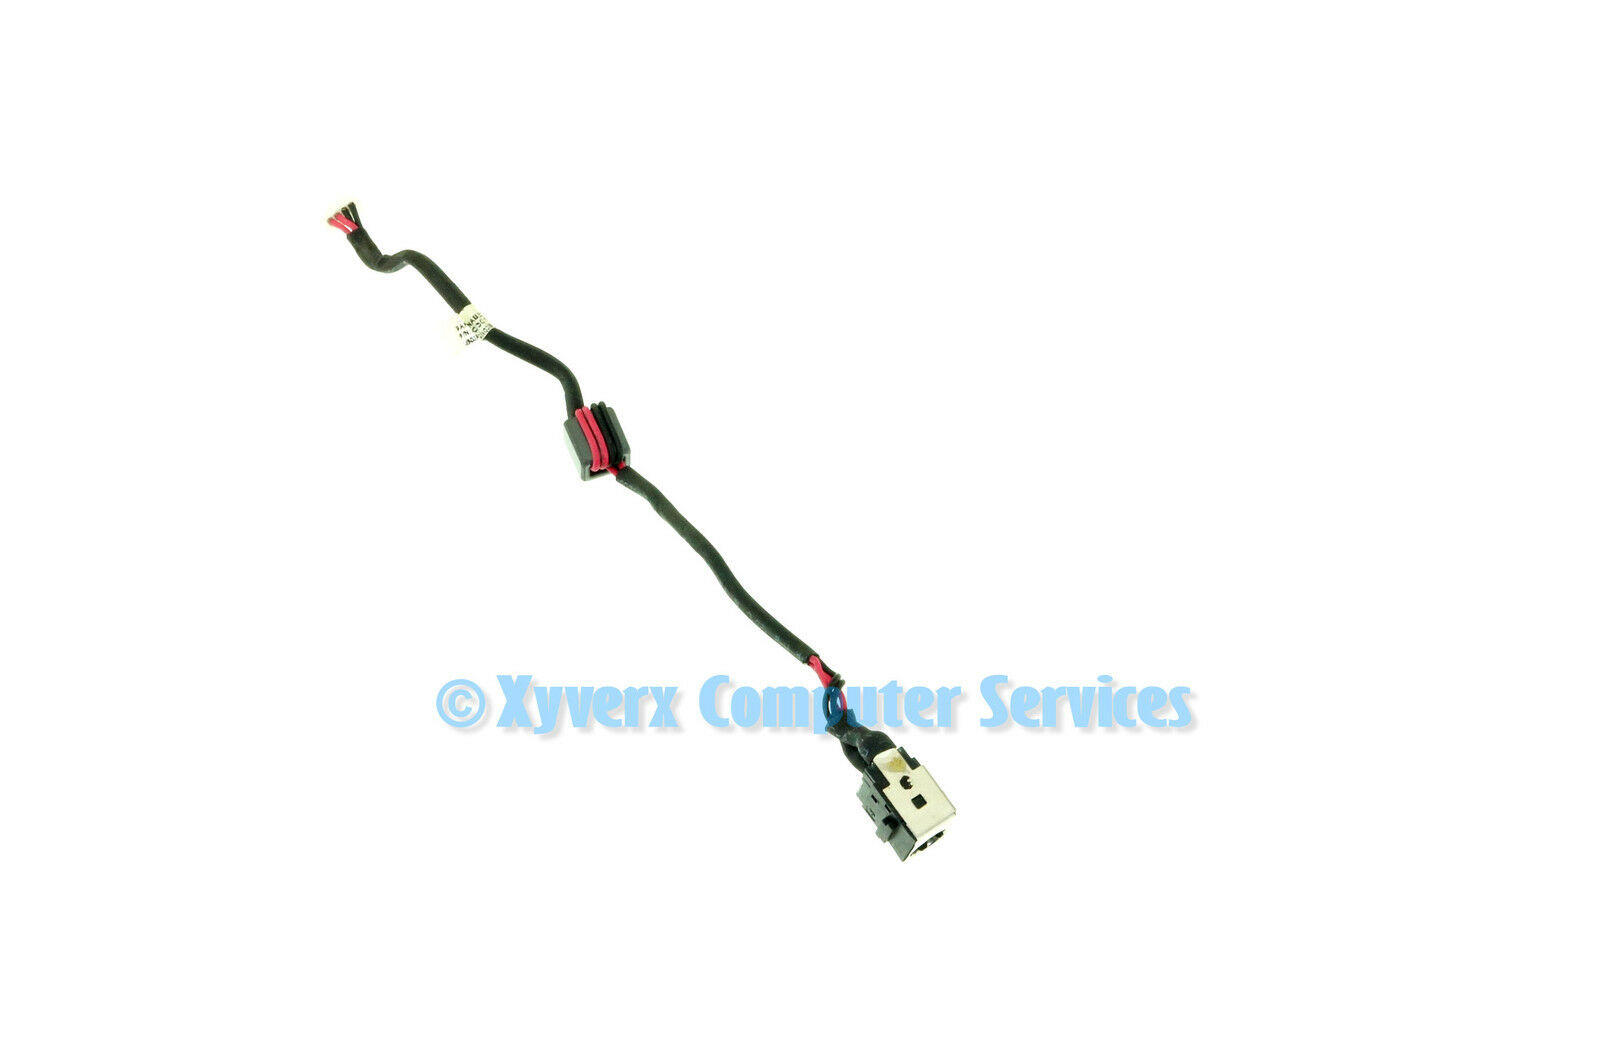 Dc In Power Jack With Cable Harness Lenovo Ideapad S10 Series 2002 S10  Wiring Schematic S10 Wiring Harness Ebay